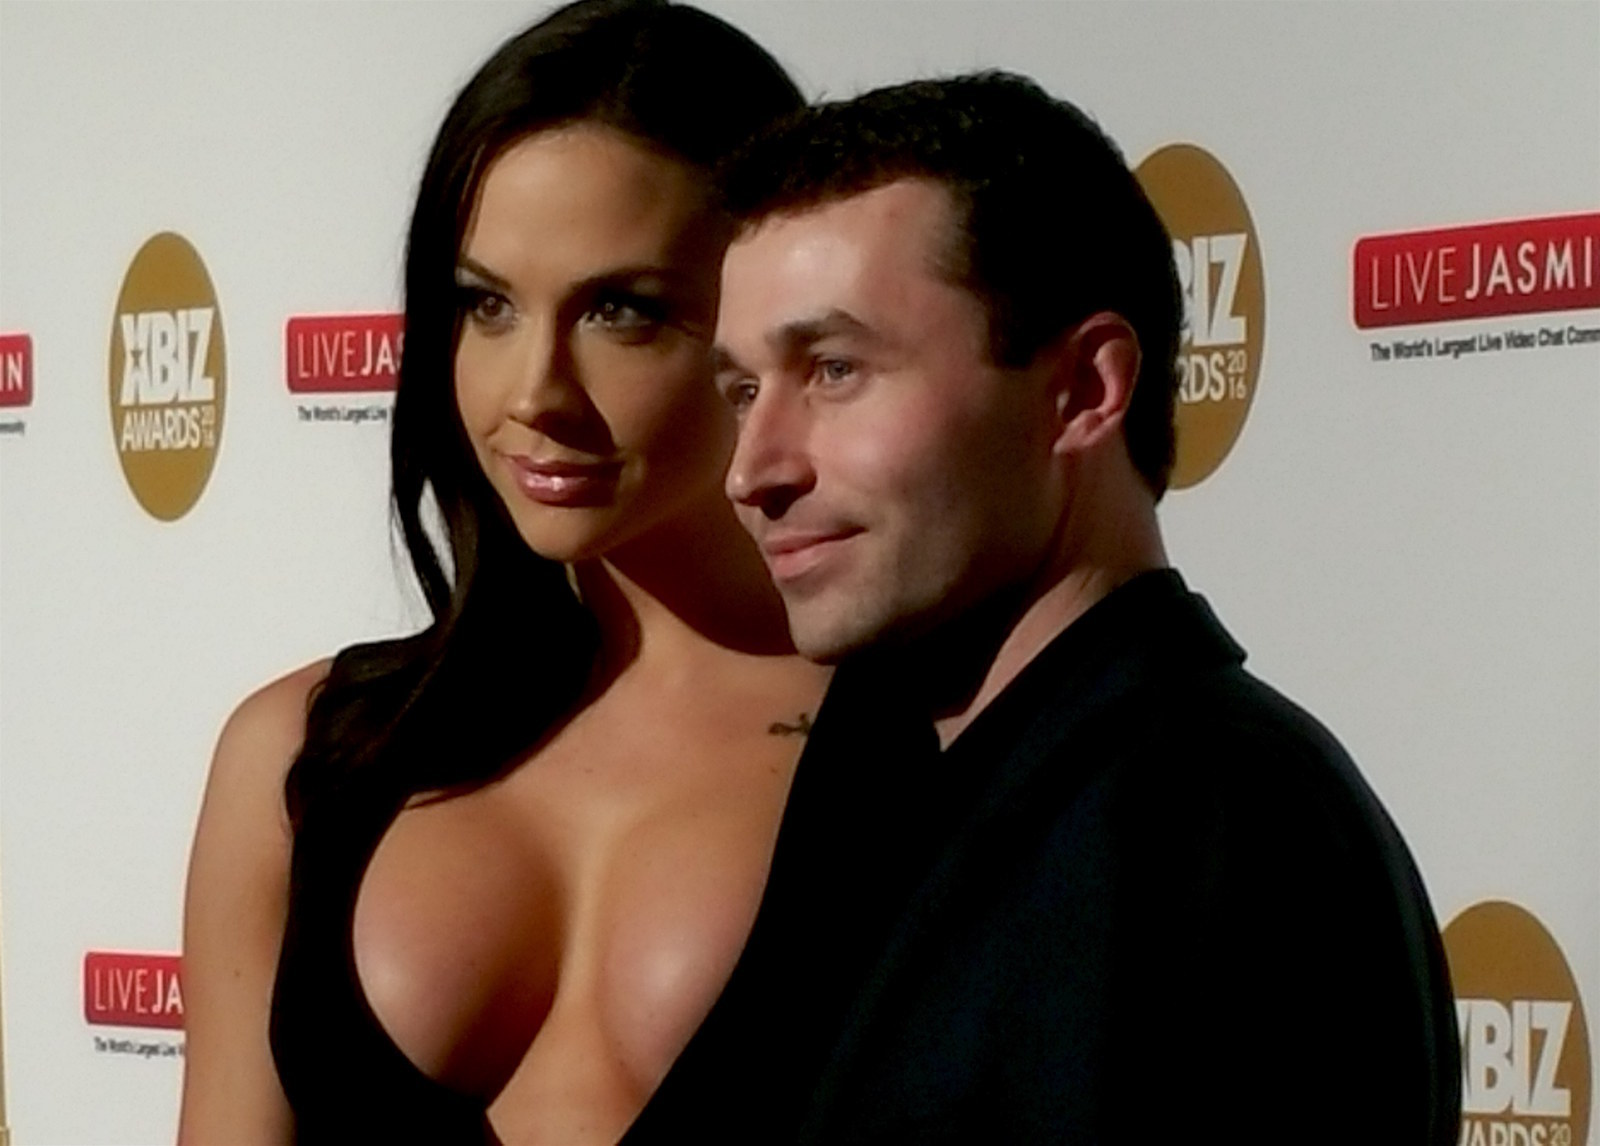 James Deen Accuser Stoya Sidesteps Controversy At The XBIZ Awards